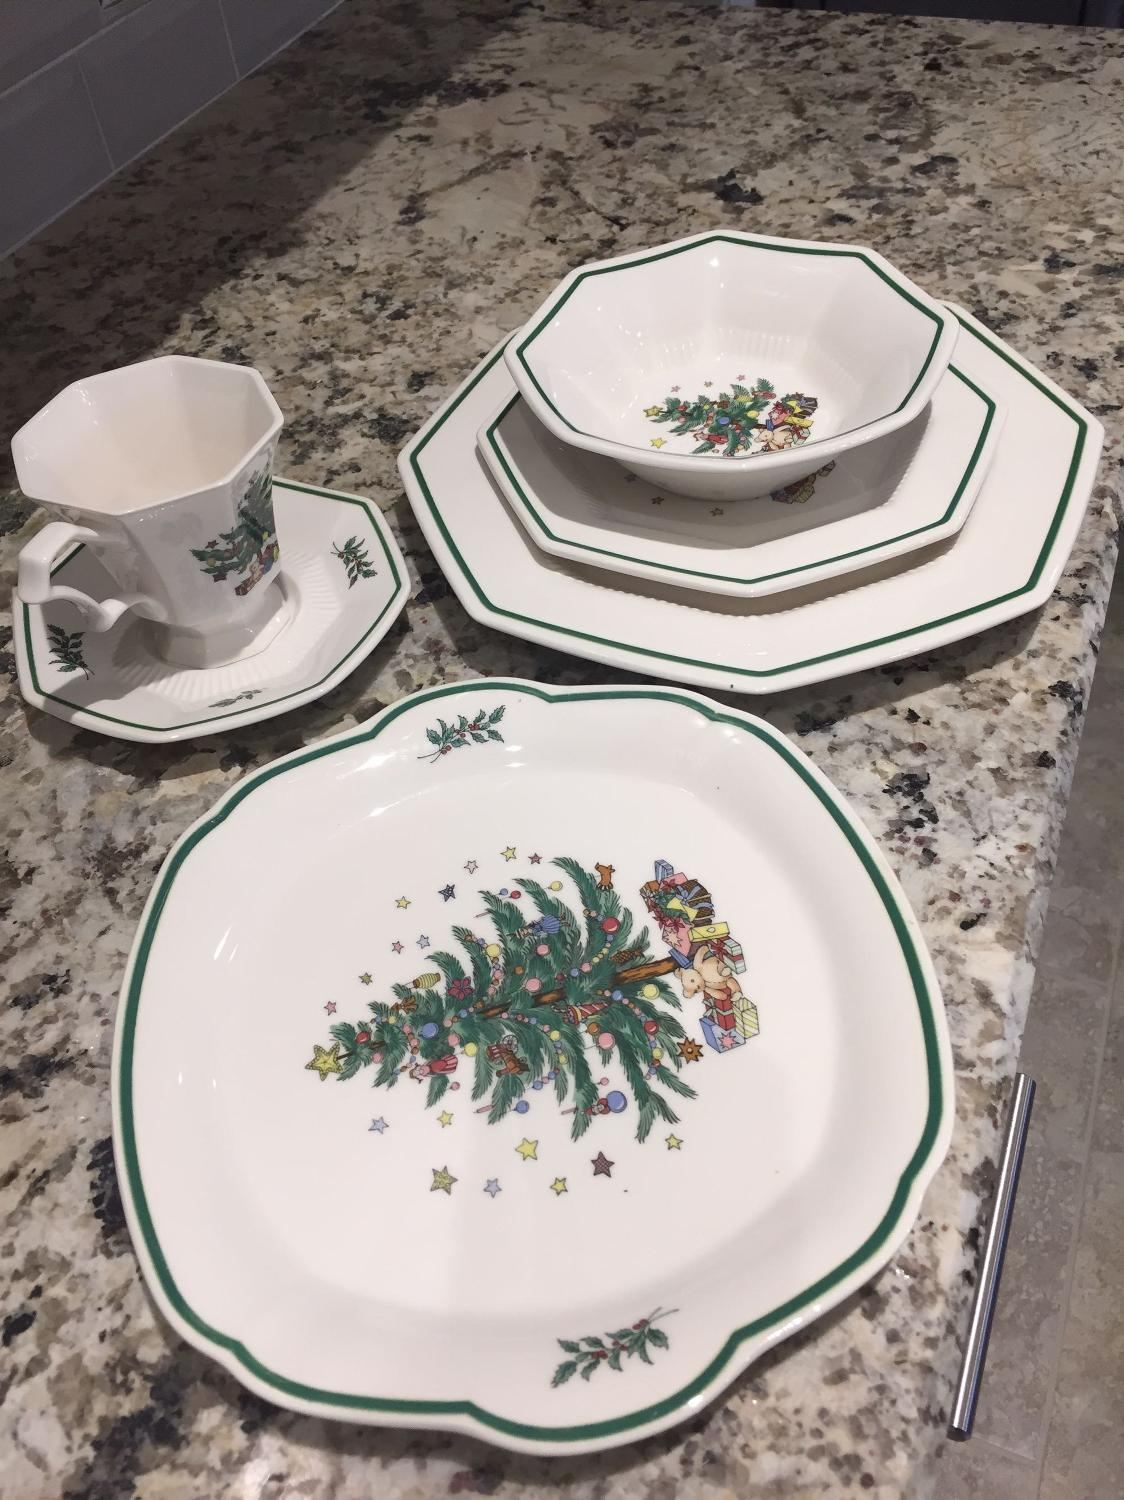 Best Christmas China for sale in Baton Rouge, Louisiana for 2018